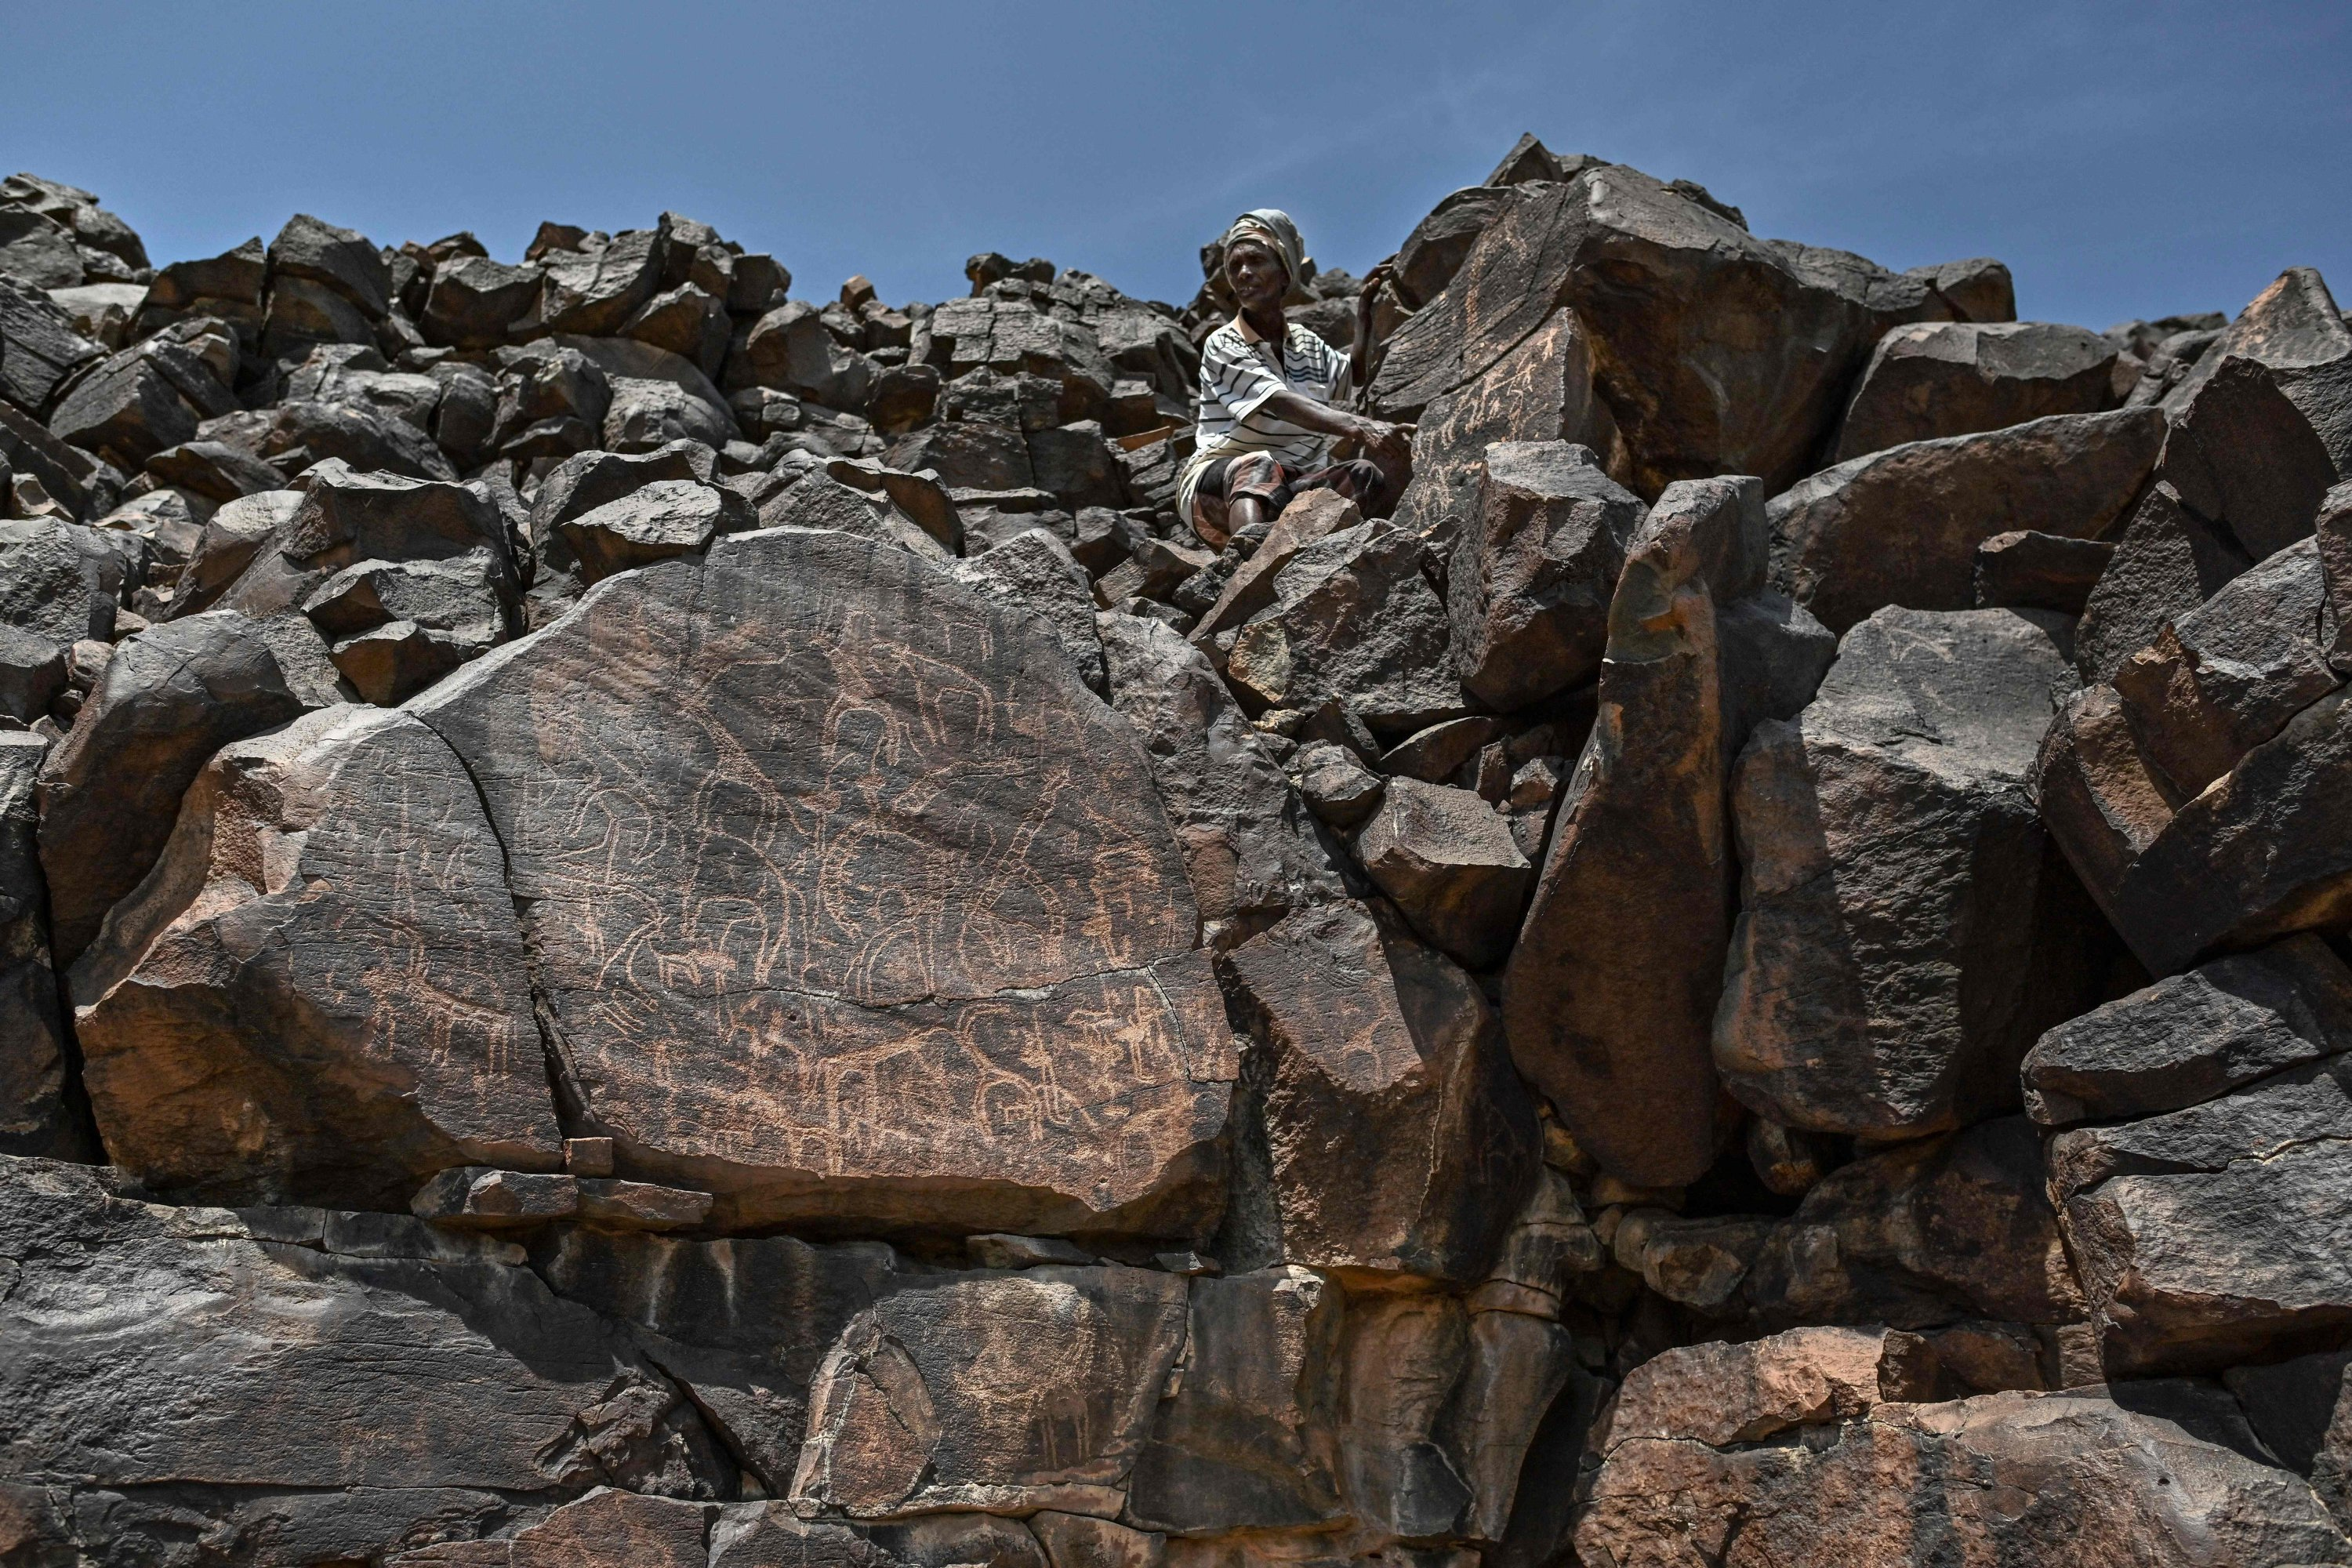 Ibrahim Dabale, 50, an art guardian and native of Djibouti, narrates on ancient depictions at the remote Abourma Rock Art site in the Makarassou Massif of Tadjoura Region, nothern Djibouti, April 13, 2021. (AFP Photo)